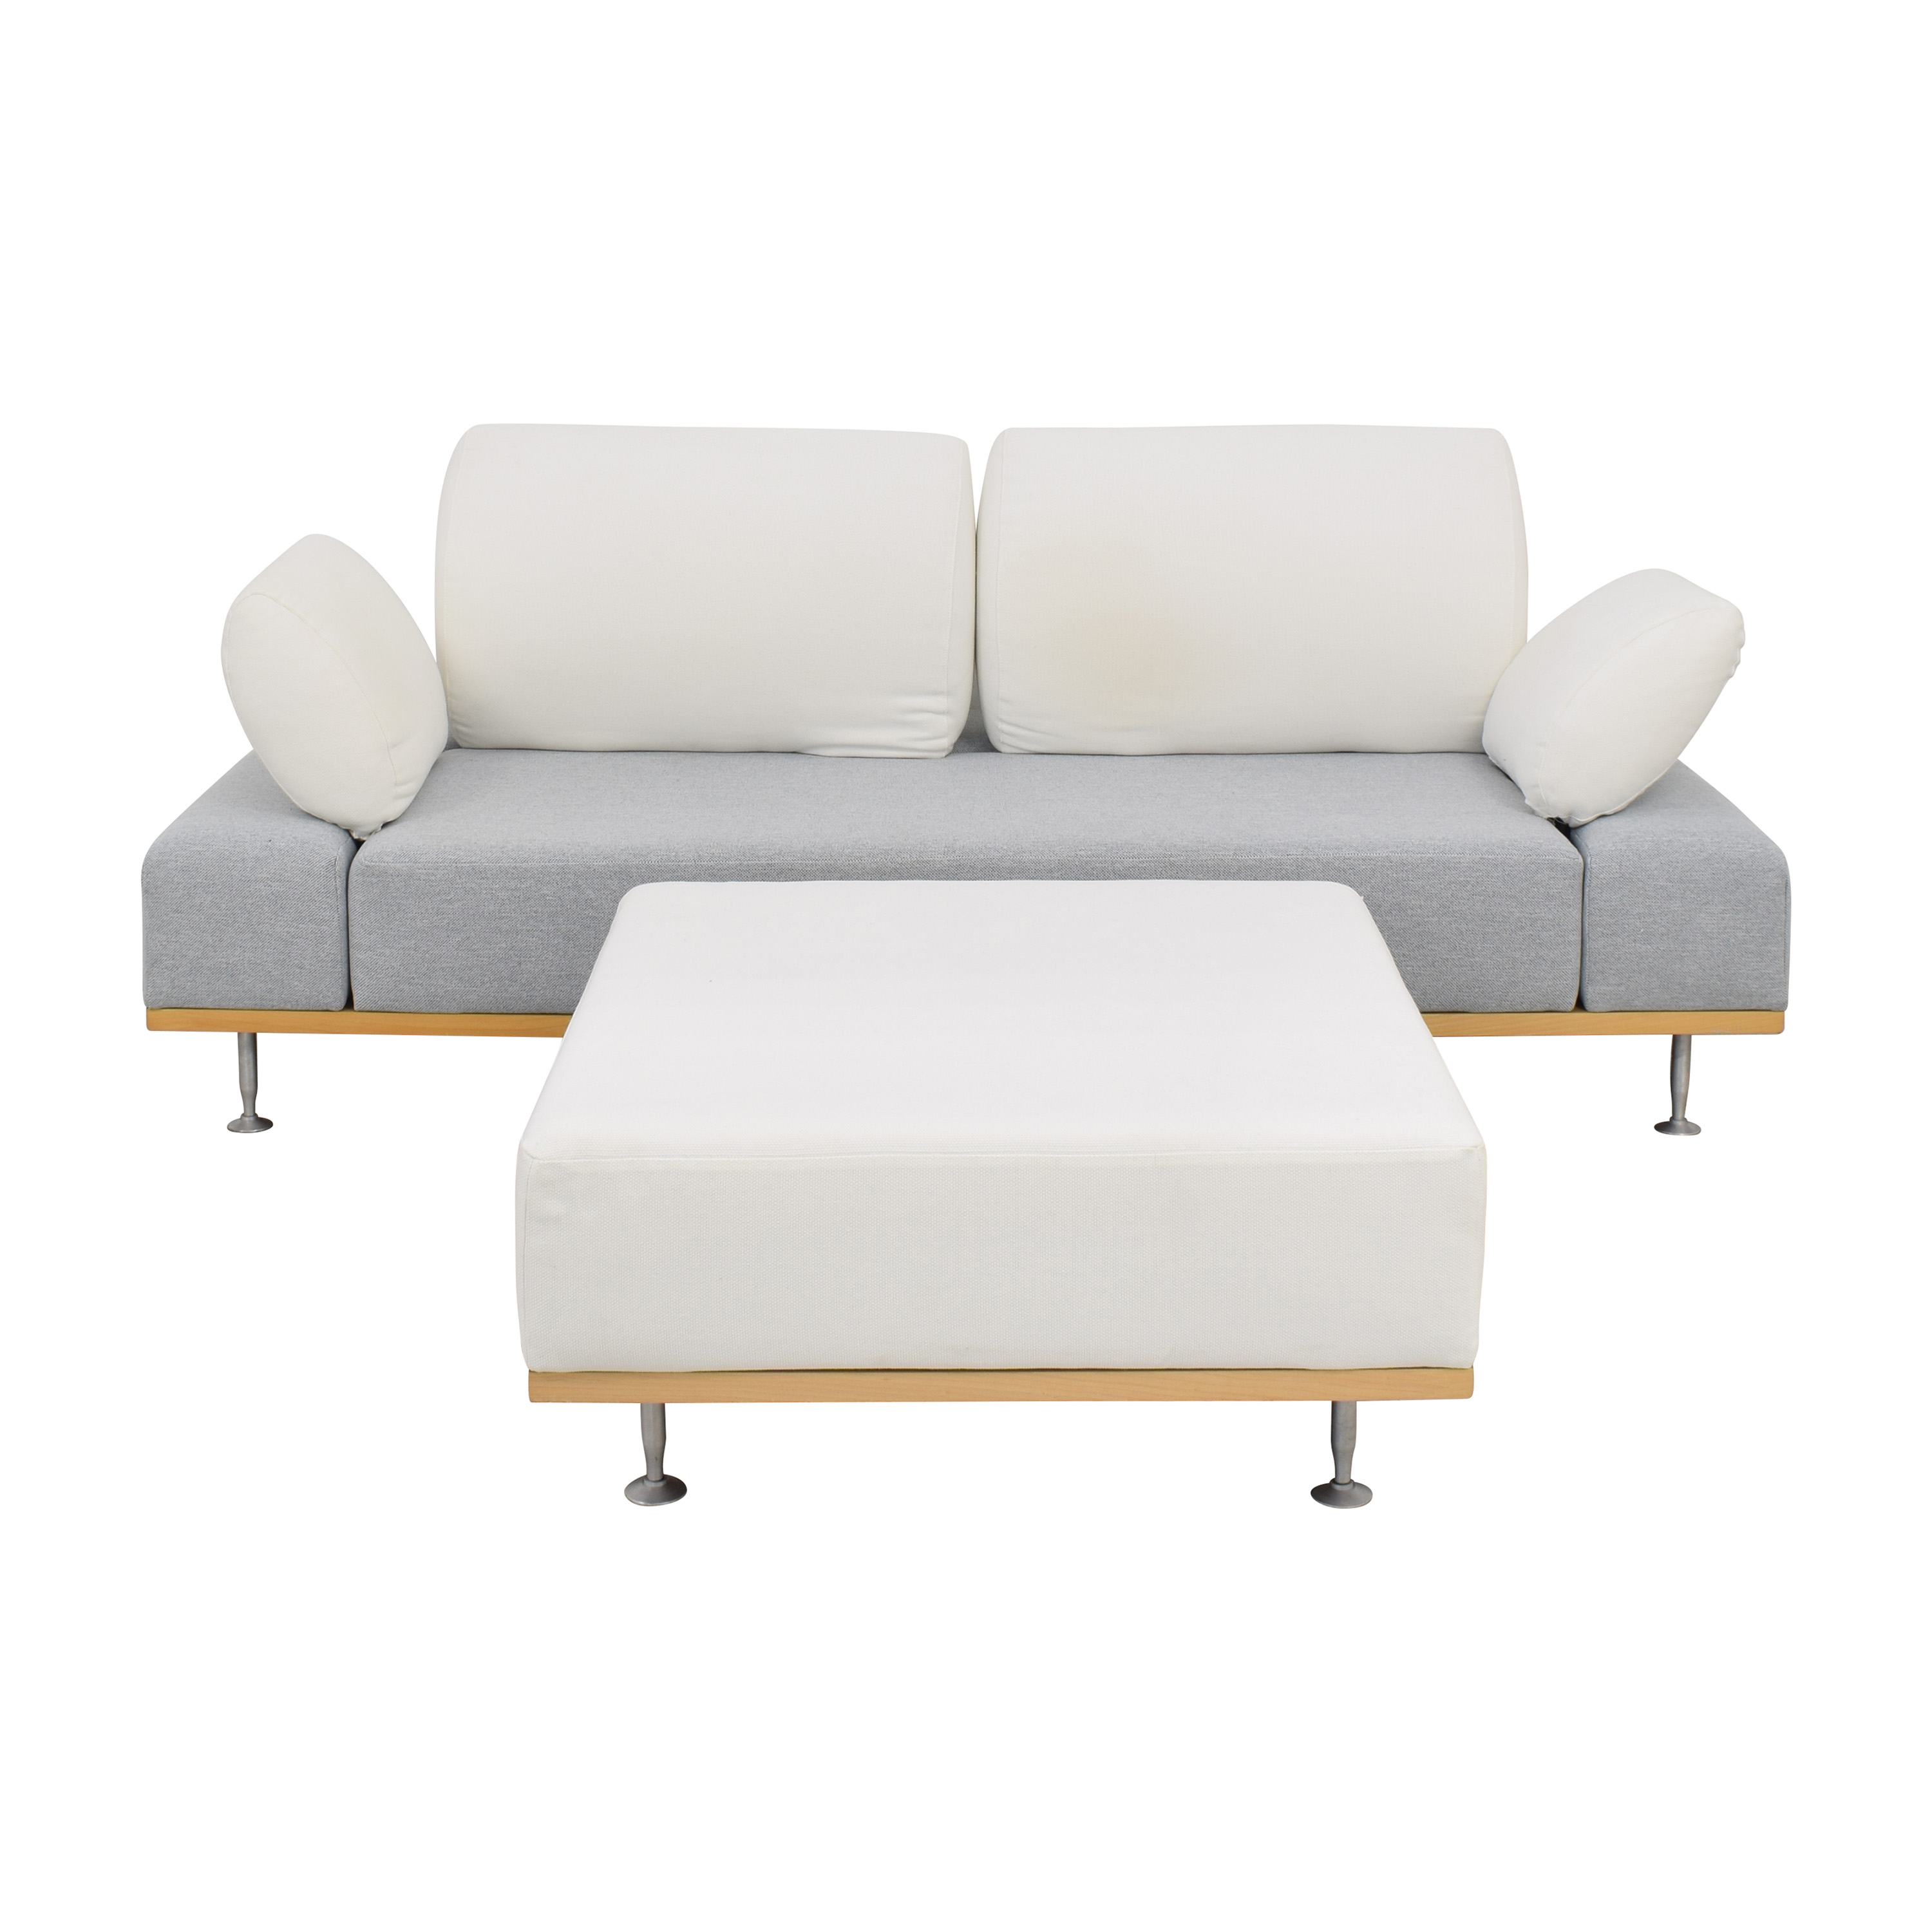 Bonaldo Modern Sofa with Ottoman sale